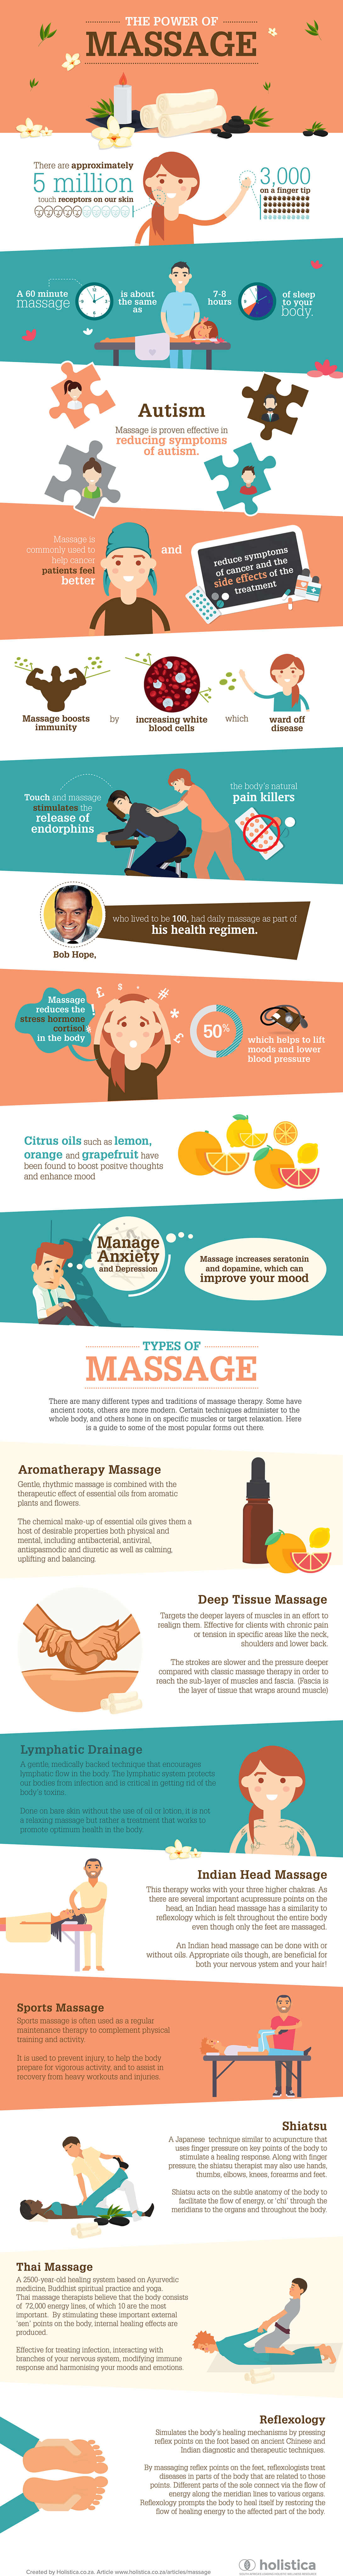 Holistica - The Power of Massage